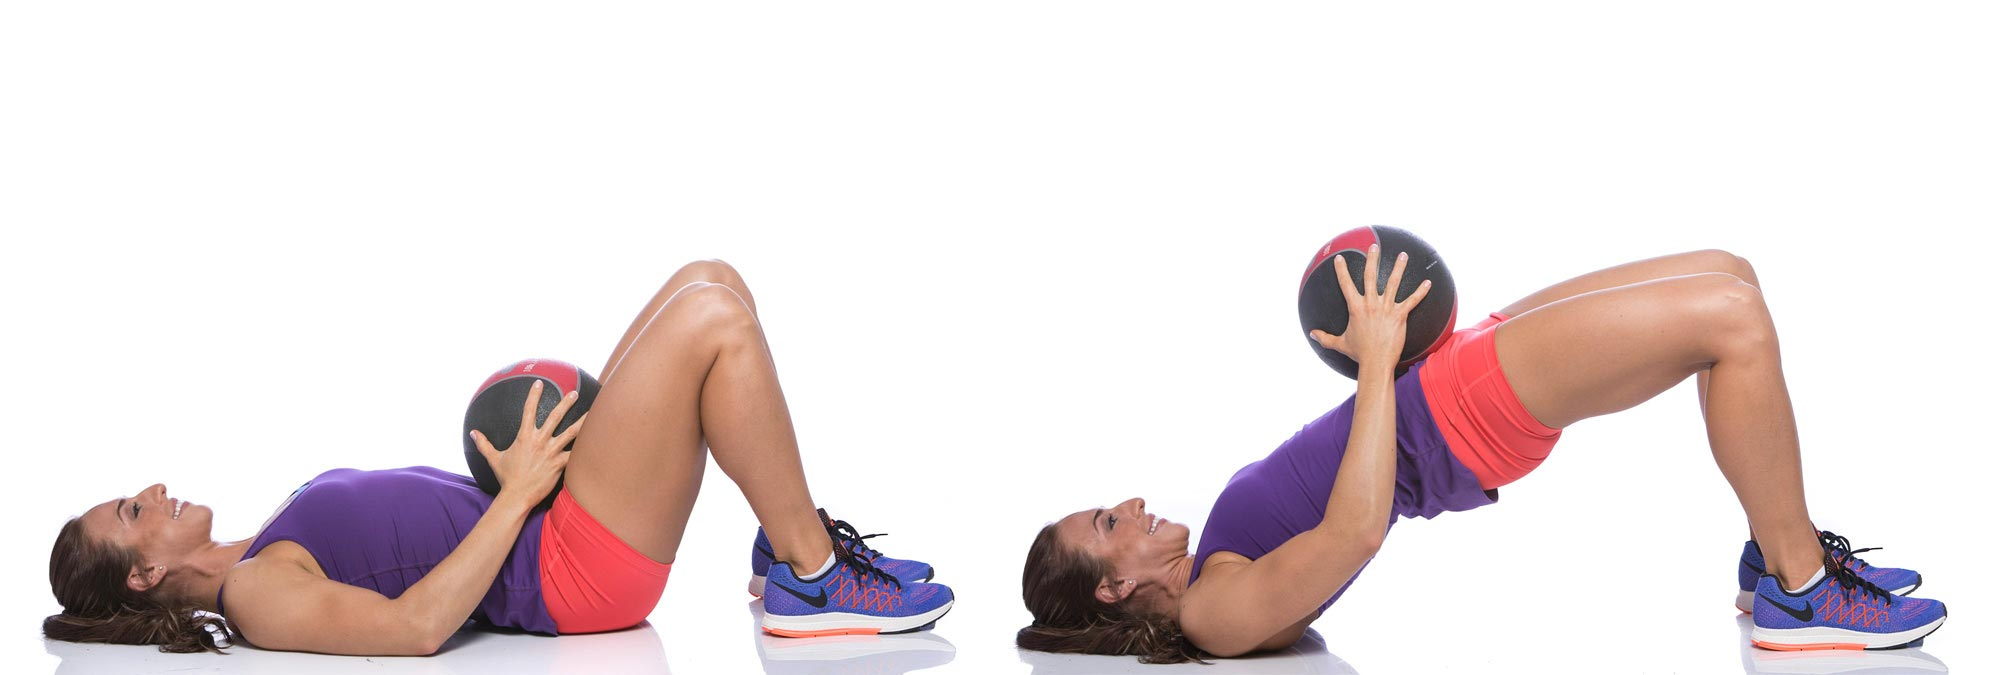 Butt workouts for women weighted glute bridge